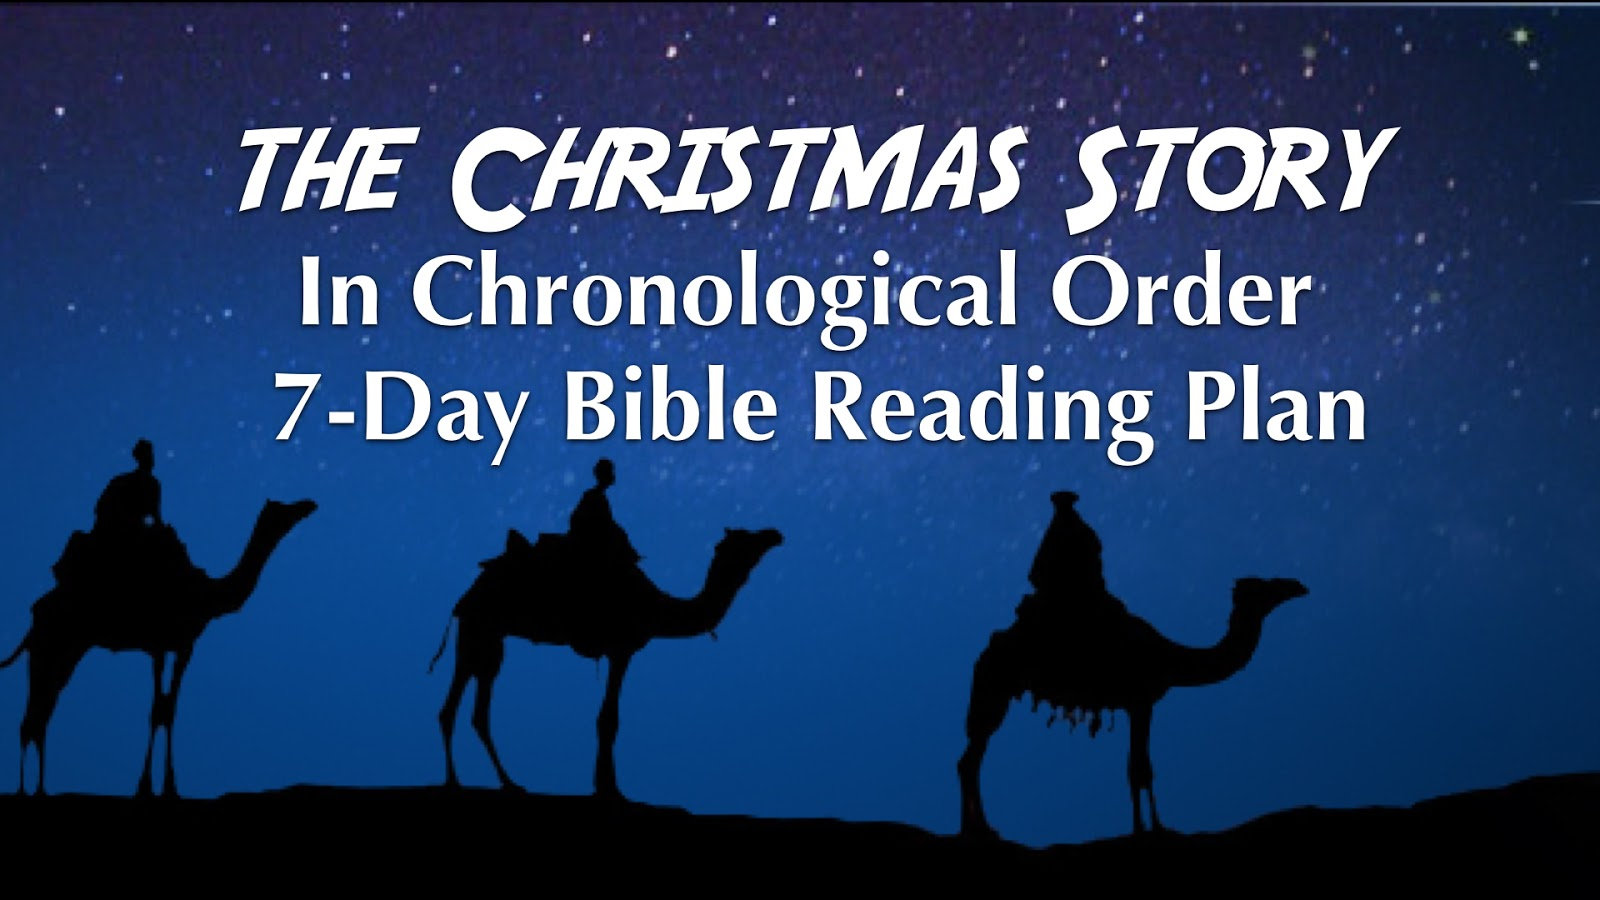 Bible Christmas Story.Chip Vickio S Blog The Chronological Christmas Story 7